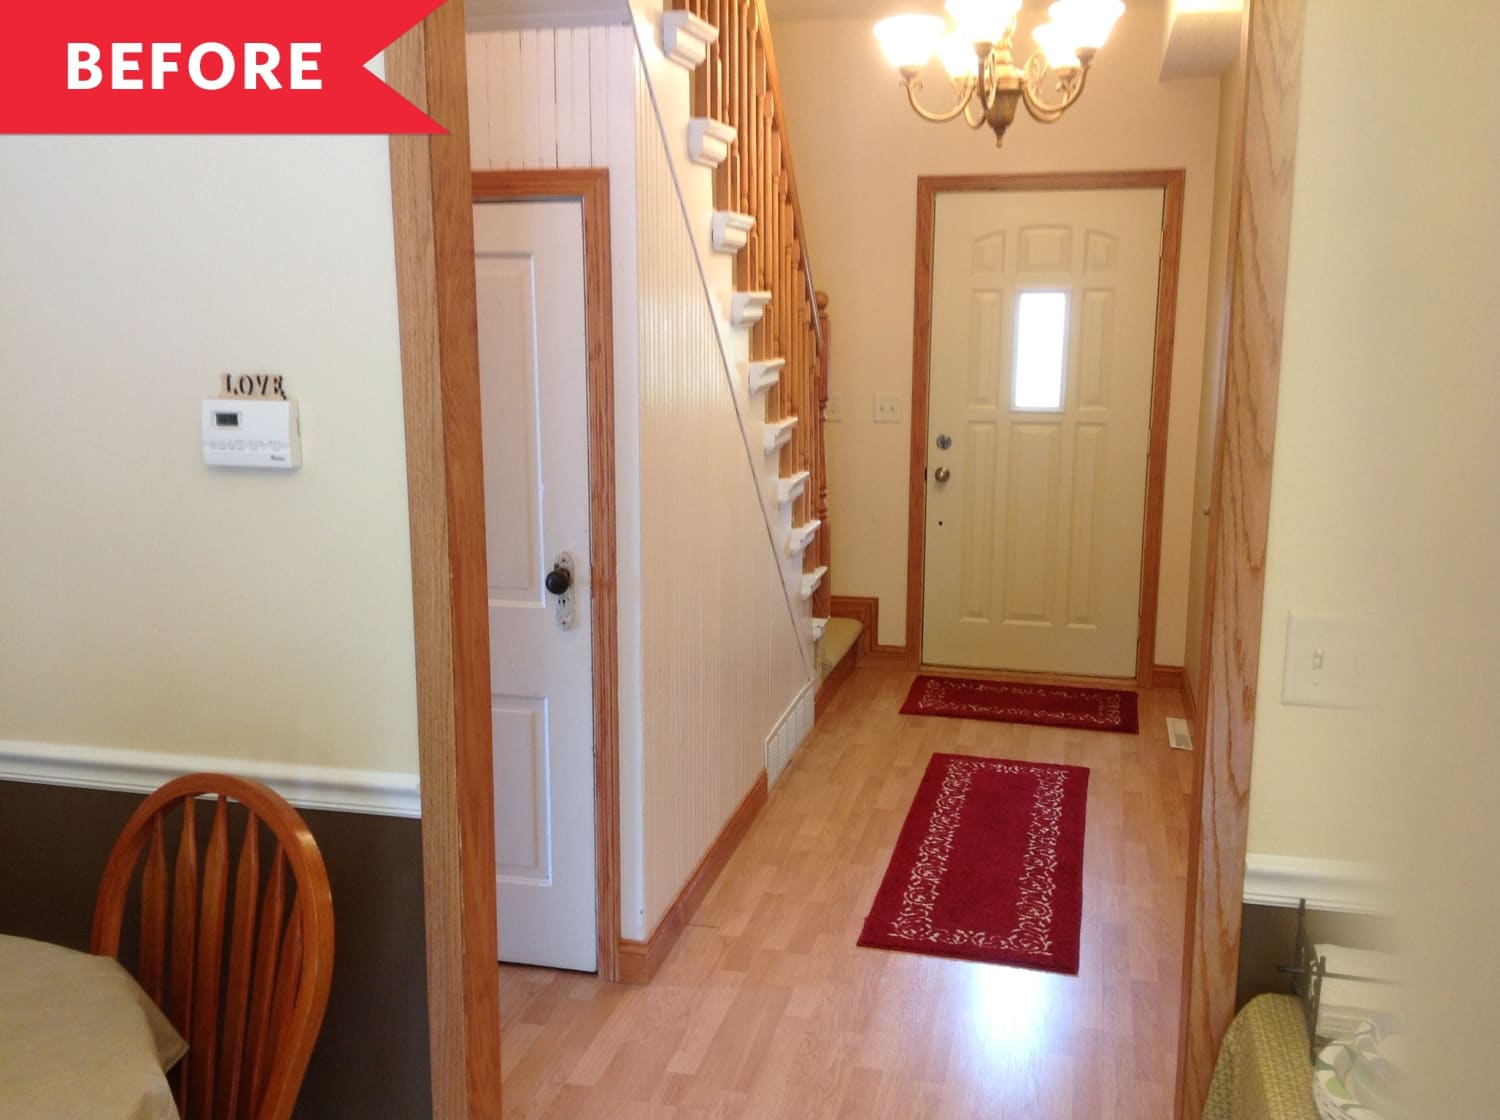 Before and After: A Cheery (But Still Classic) Update for This 1880s Entryway